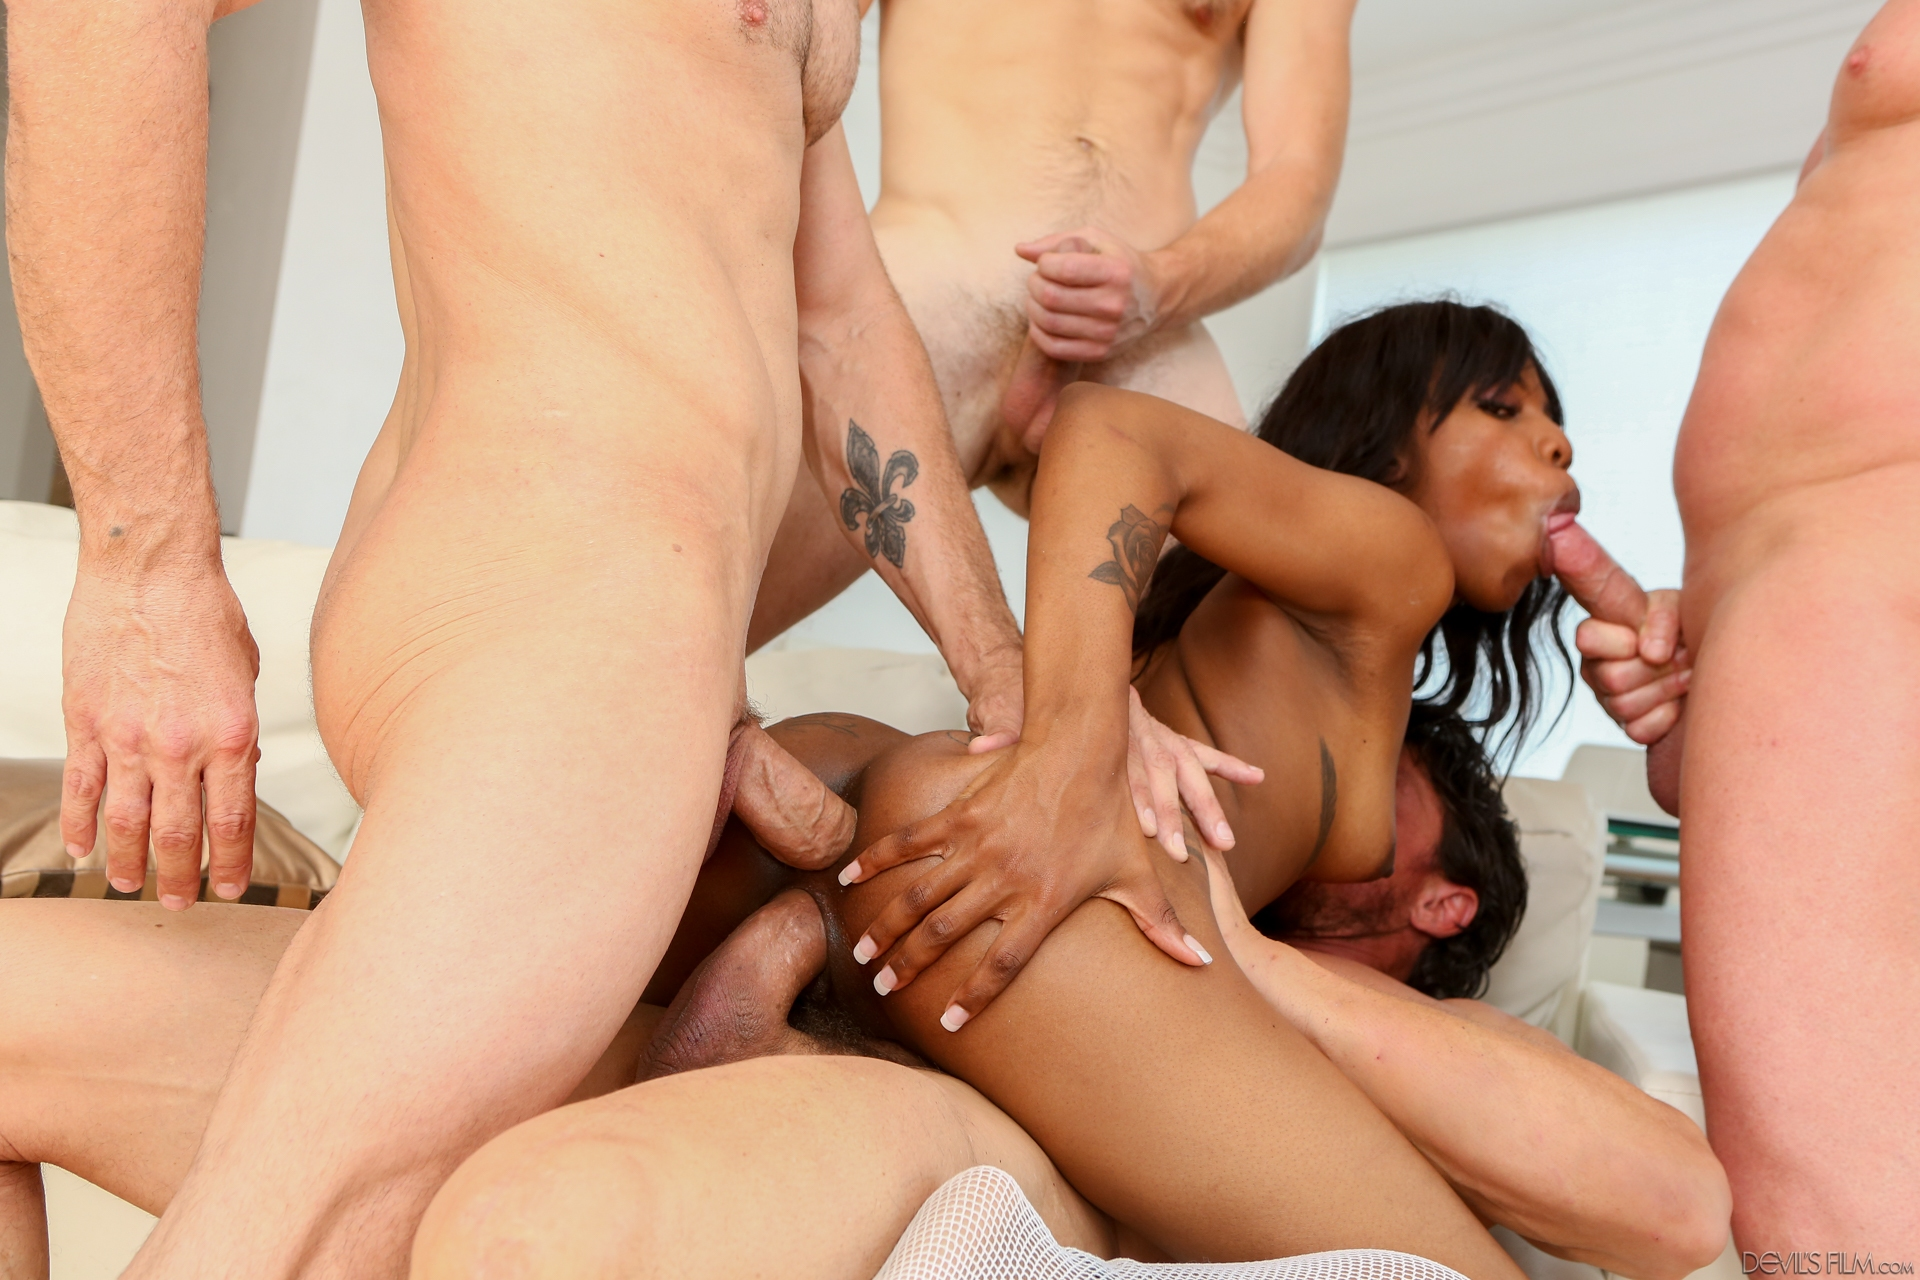 Black Girl White Guy  Most Sexy Porn  Free Hd  4K Photos-9819